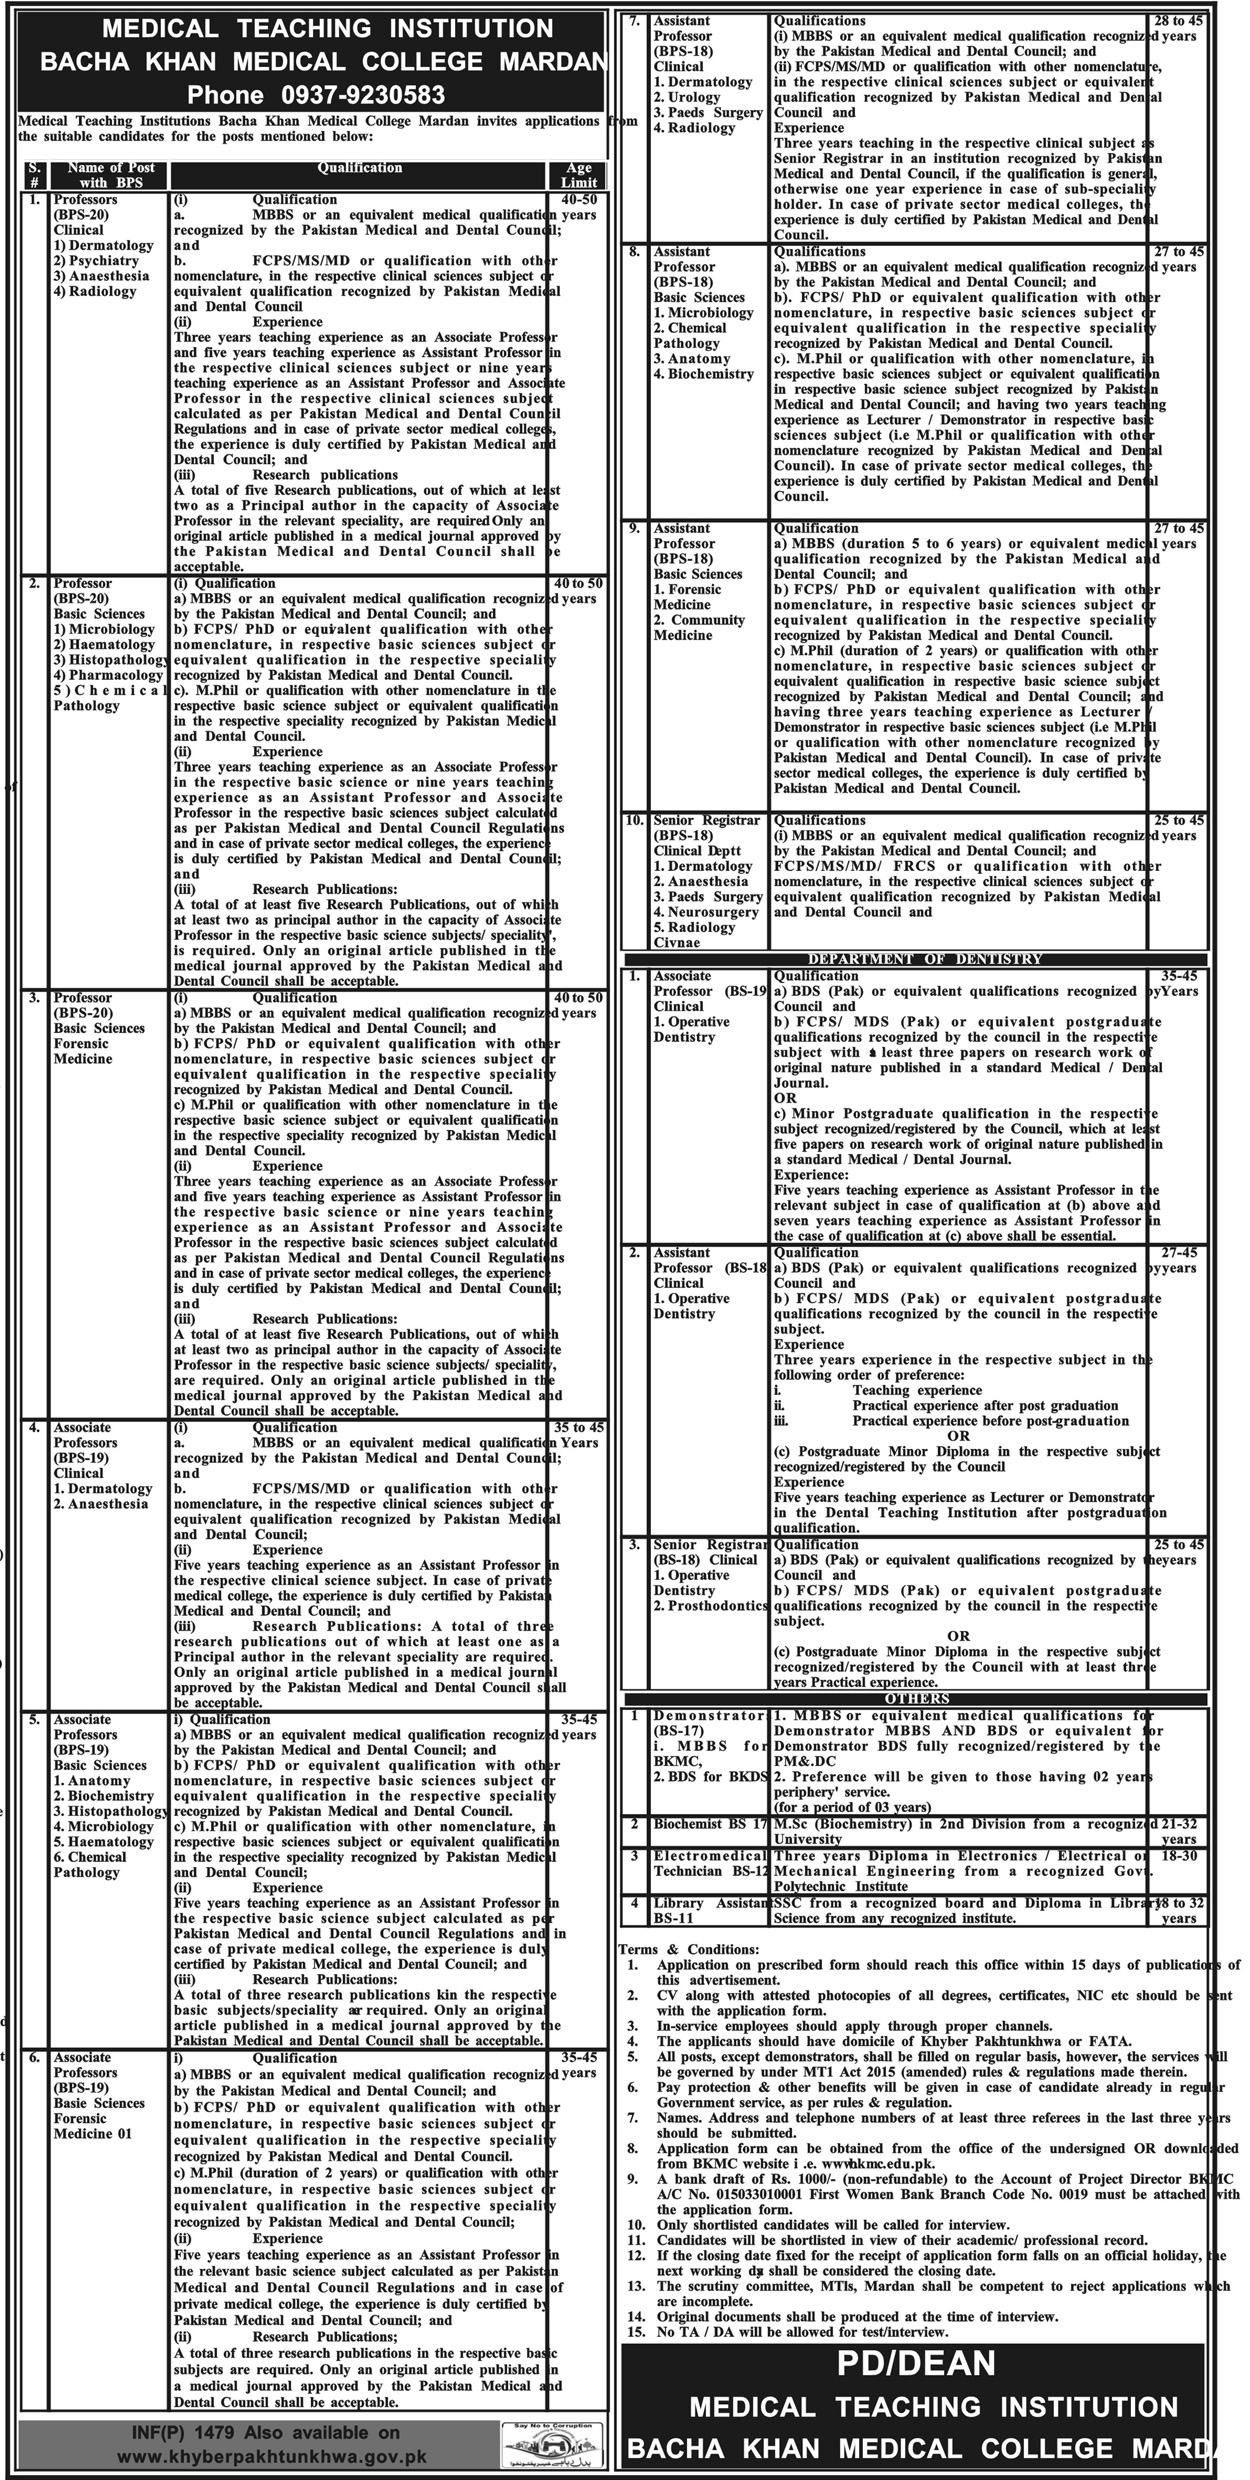 Bacha Khan Medical Teaching Institution New Jobs Daily Mashriq Newspaper26 March 2018